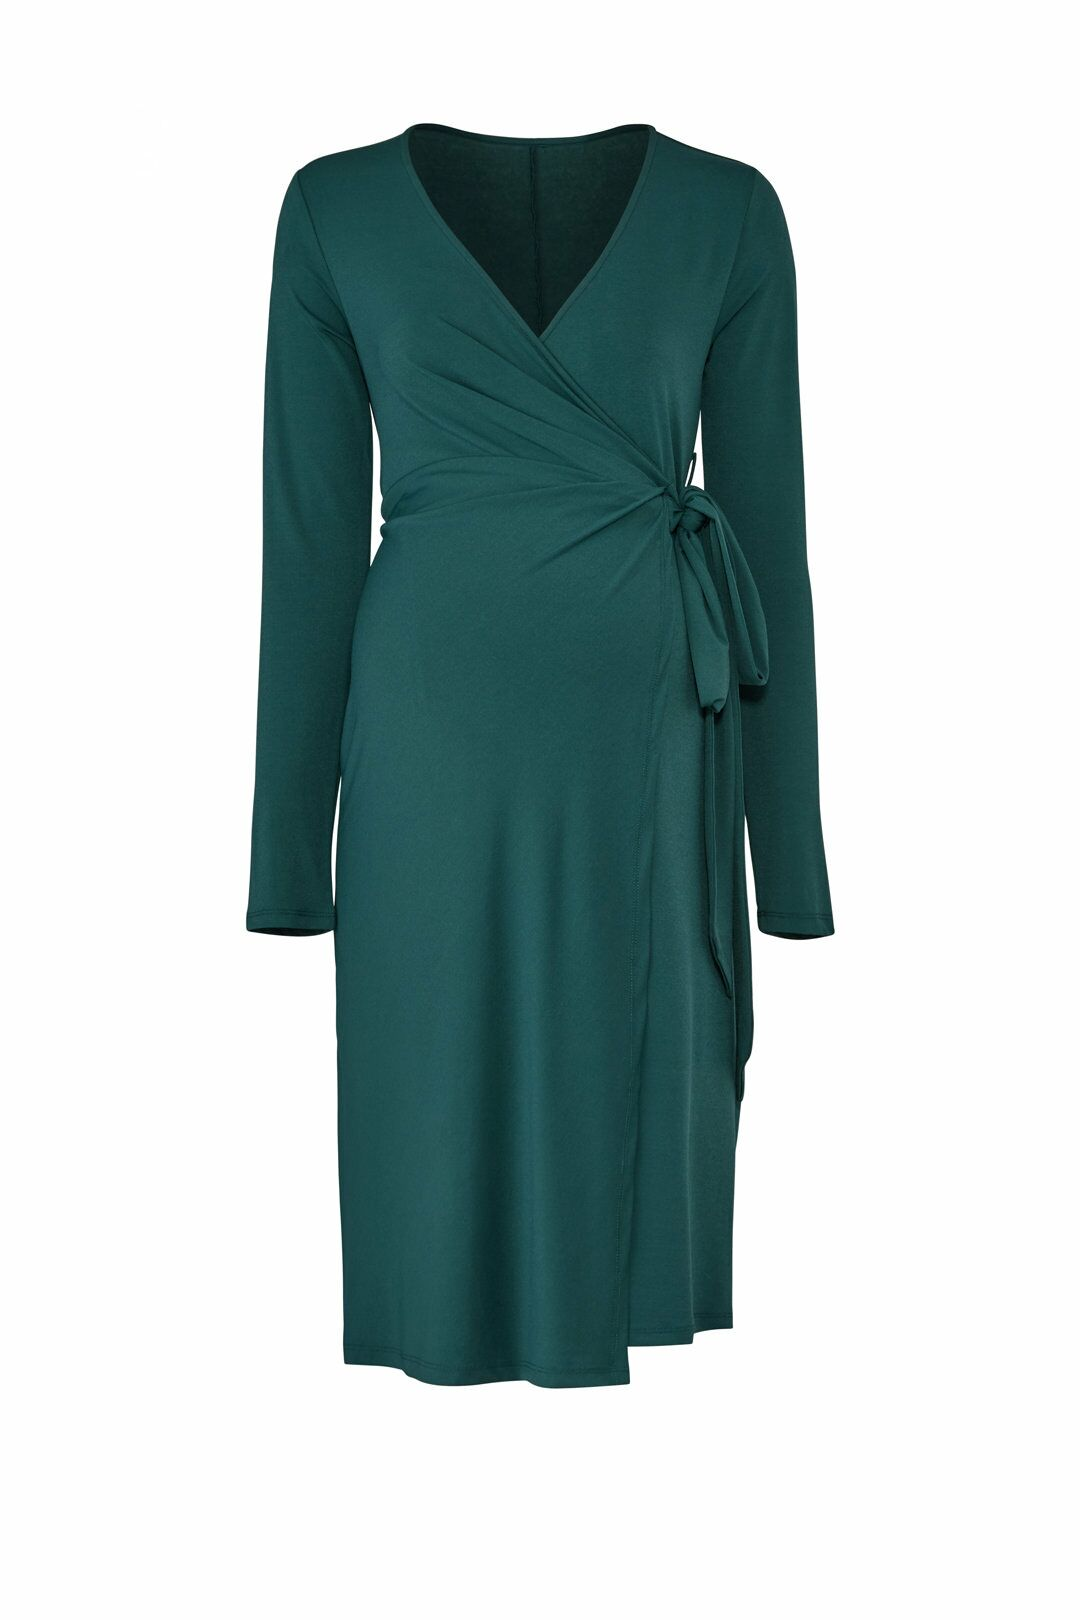 Emerald Wrap Maternity Dress